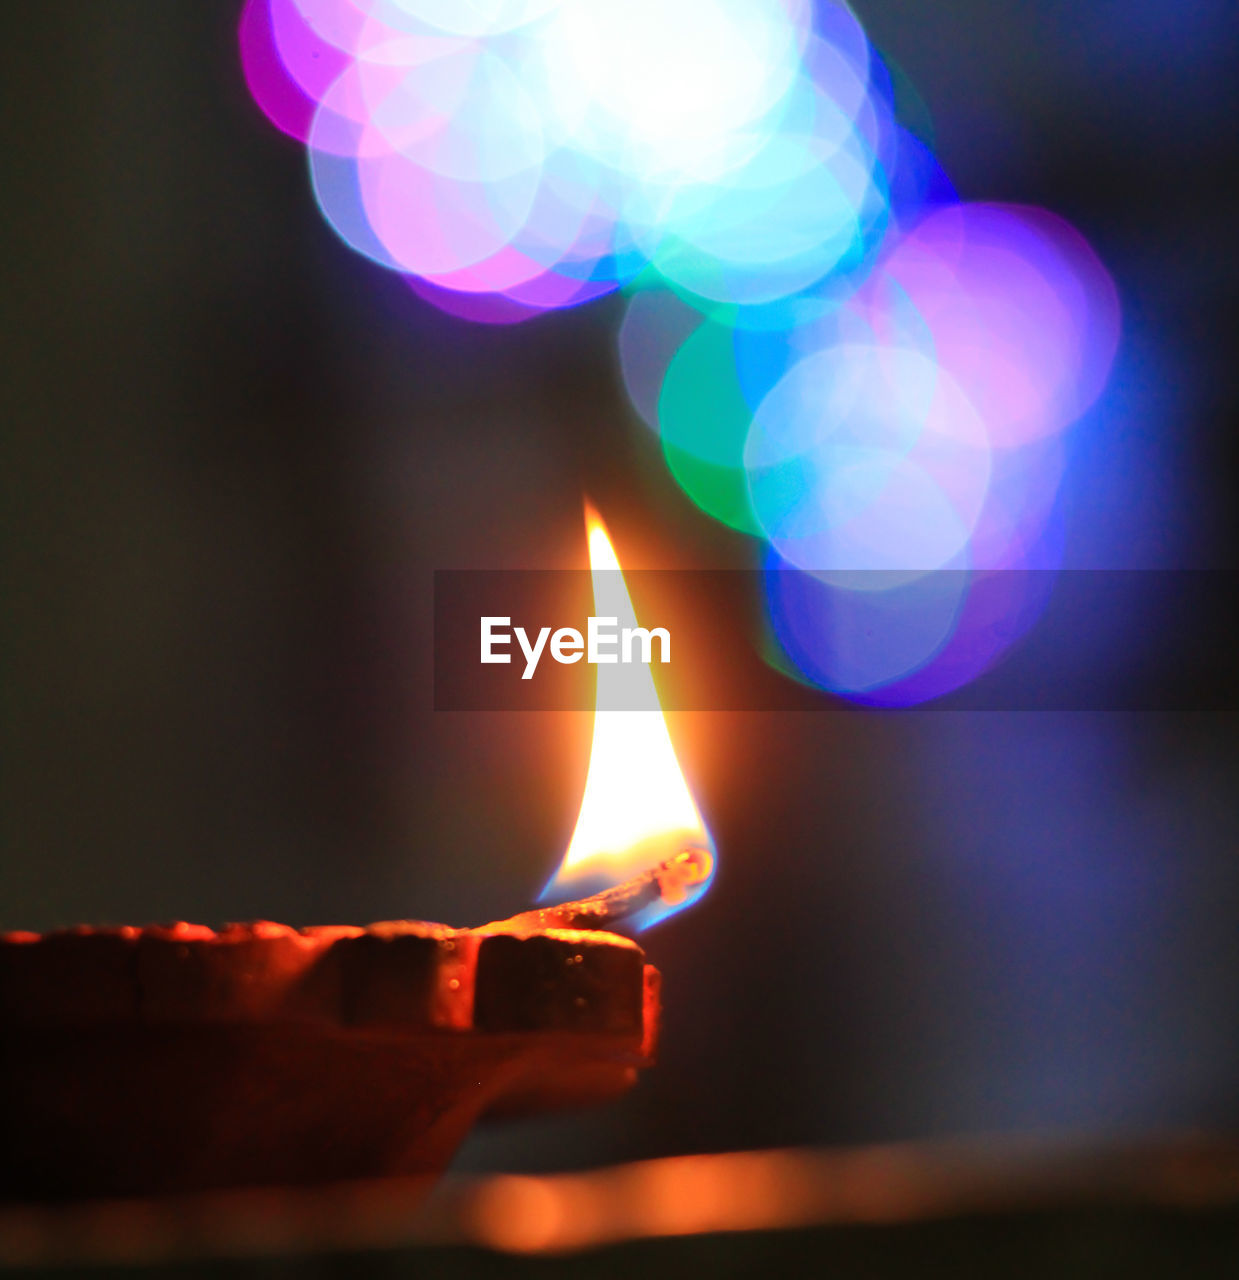 flame, burning, fire, illuminated, heat - temperature, glowing, fire - natural phenomenon, close-up, nature, no people, focus on foreground, lighting equipment, lens flare, light - natural phenomenon, indoors, celebration, oil lamp, night, selective focus, candle, electric lamp